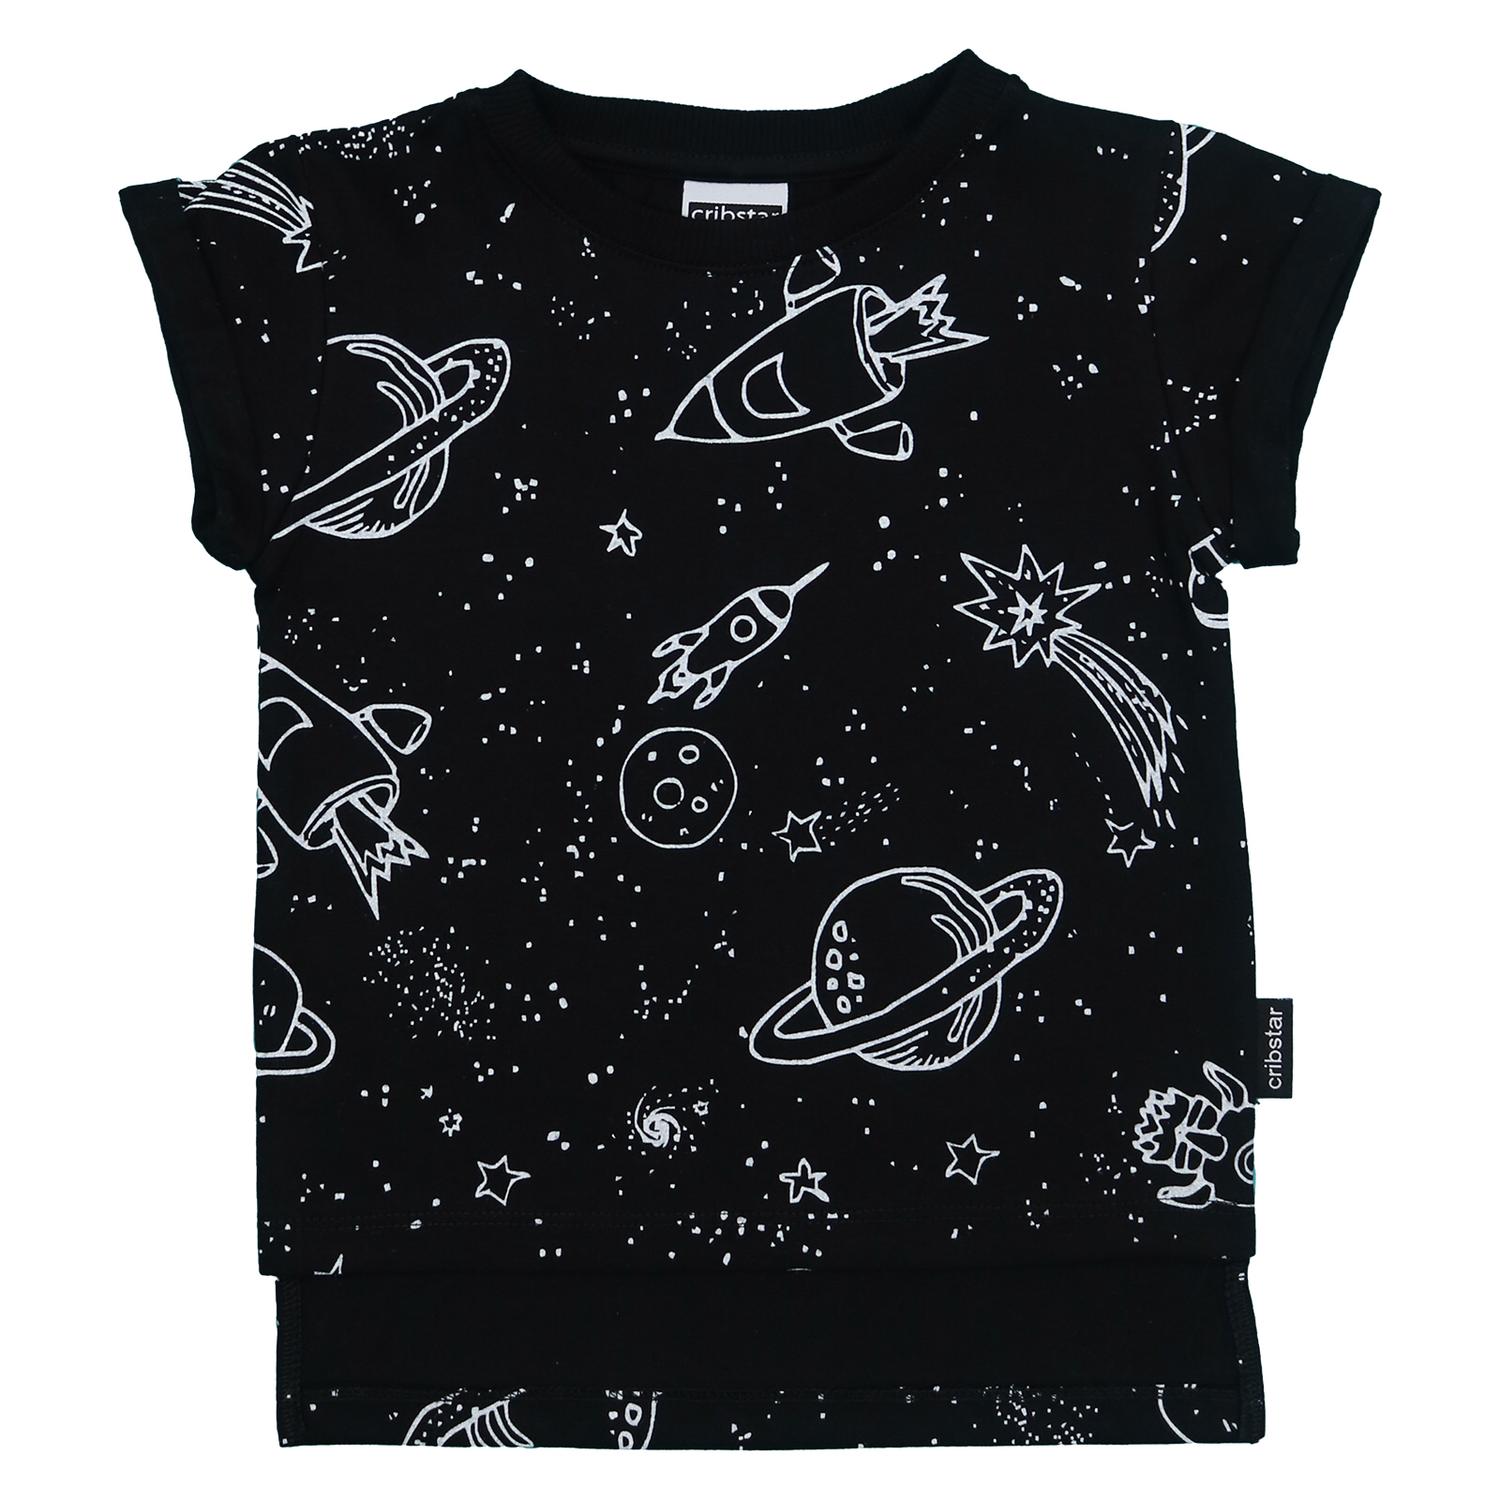 Cribstar Space T-shirt